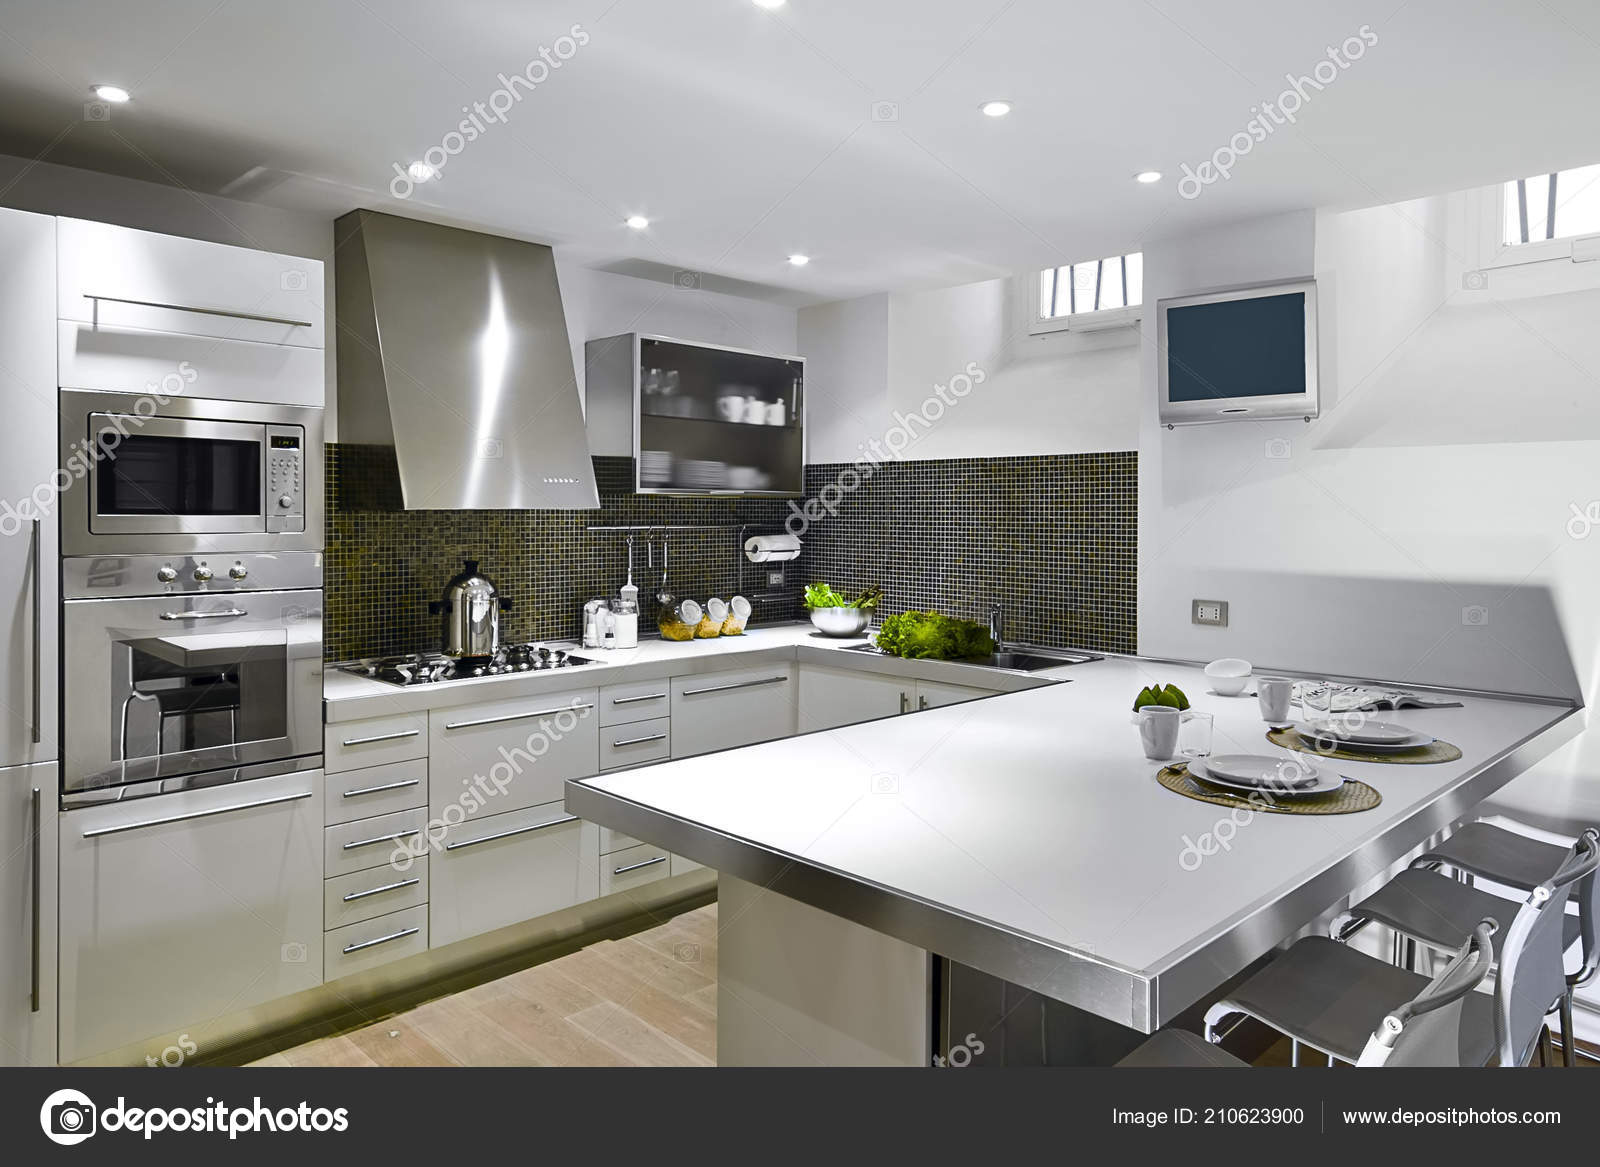 Interiors Shots Modern Kitchen Whose, What Are Stock Kitchen Cabinets Made Of